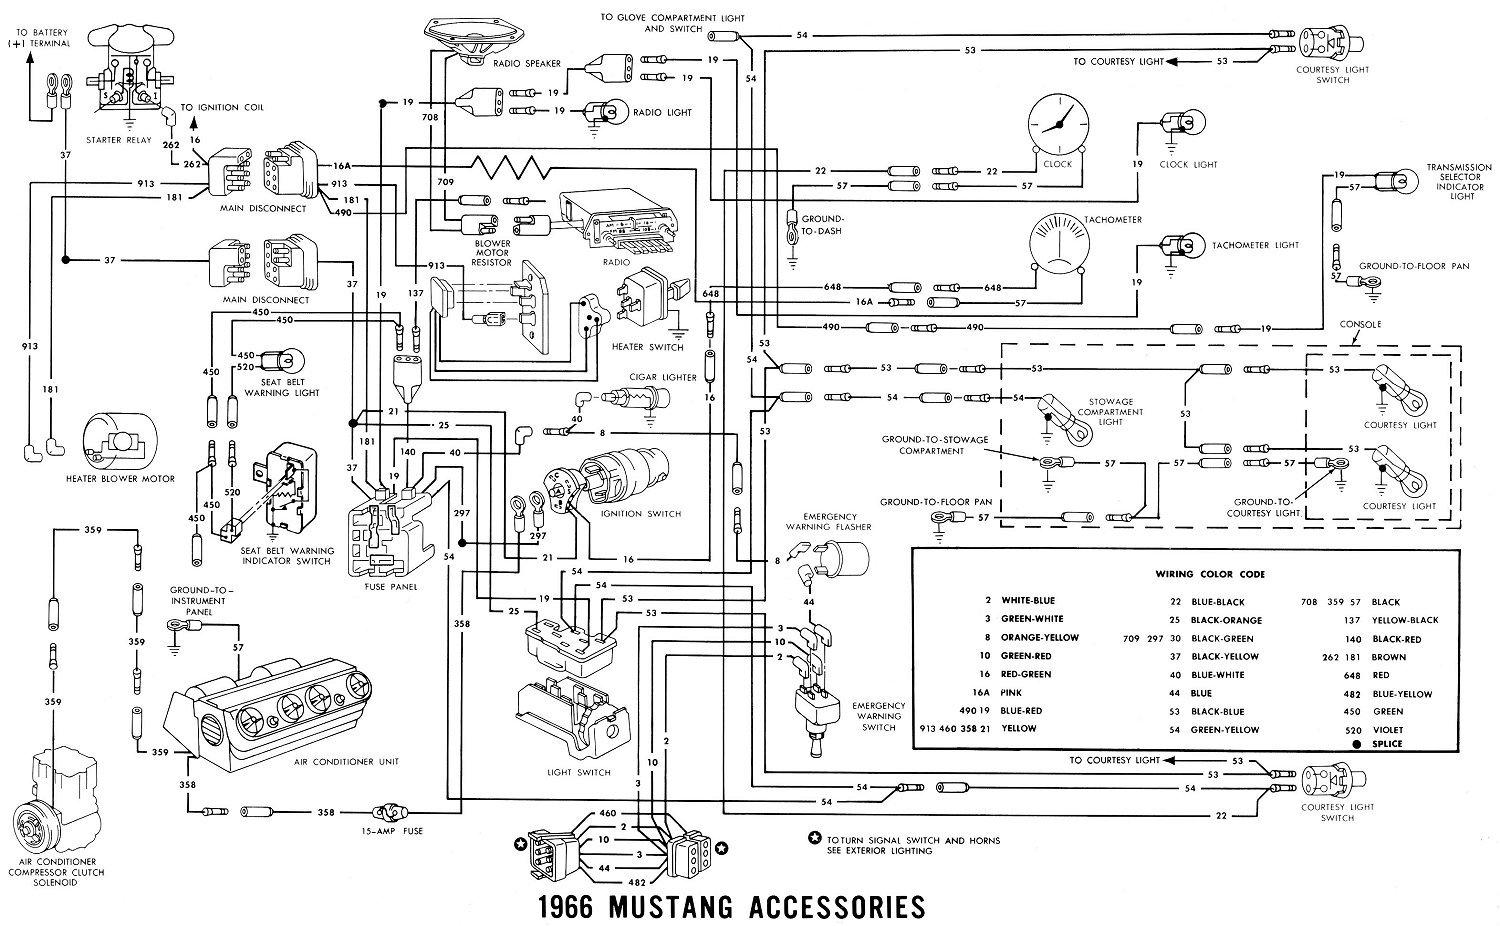 Vintage Mustang Wiring Diagrams Mitsubishi 66 Accessories Schematic